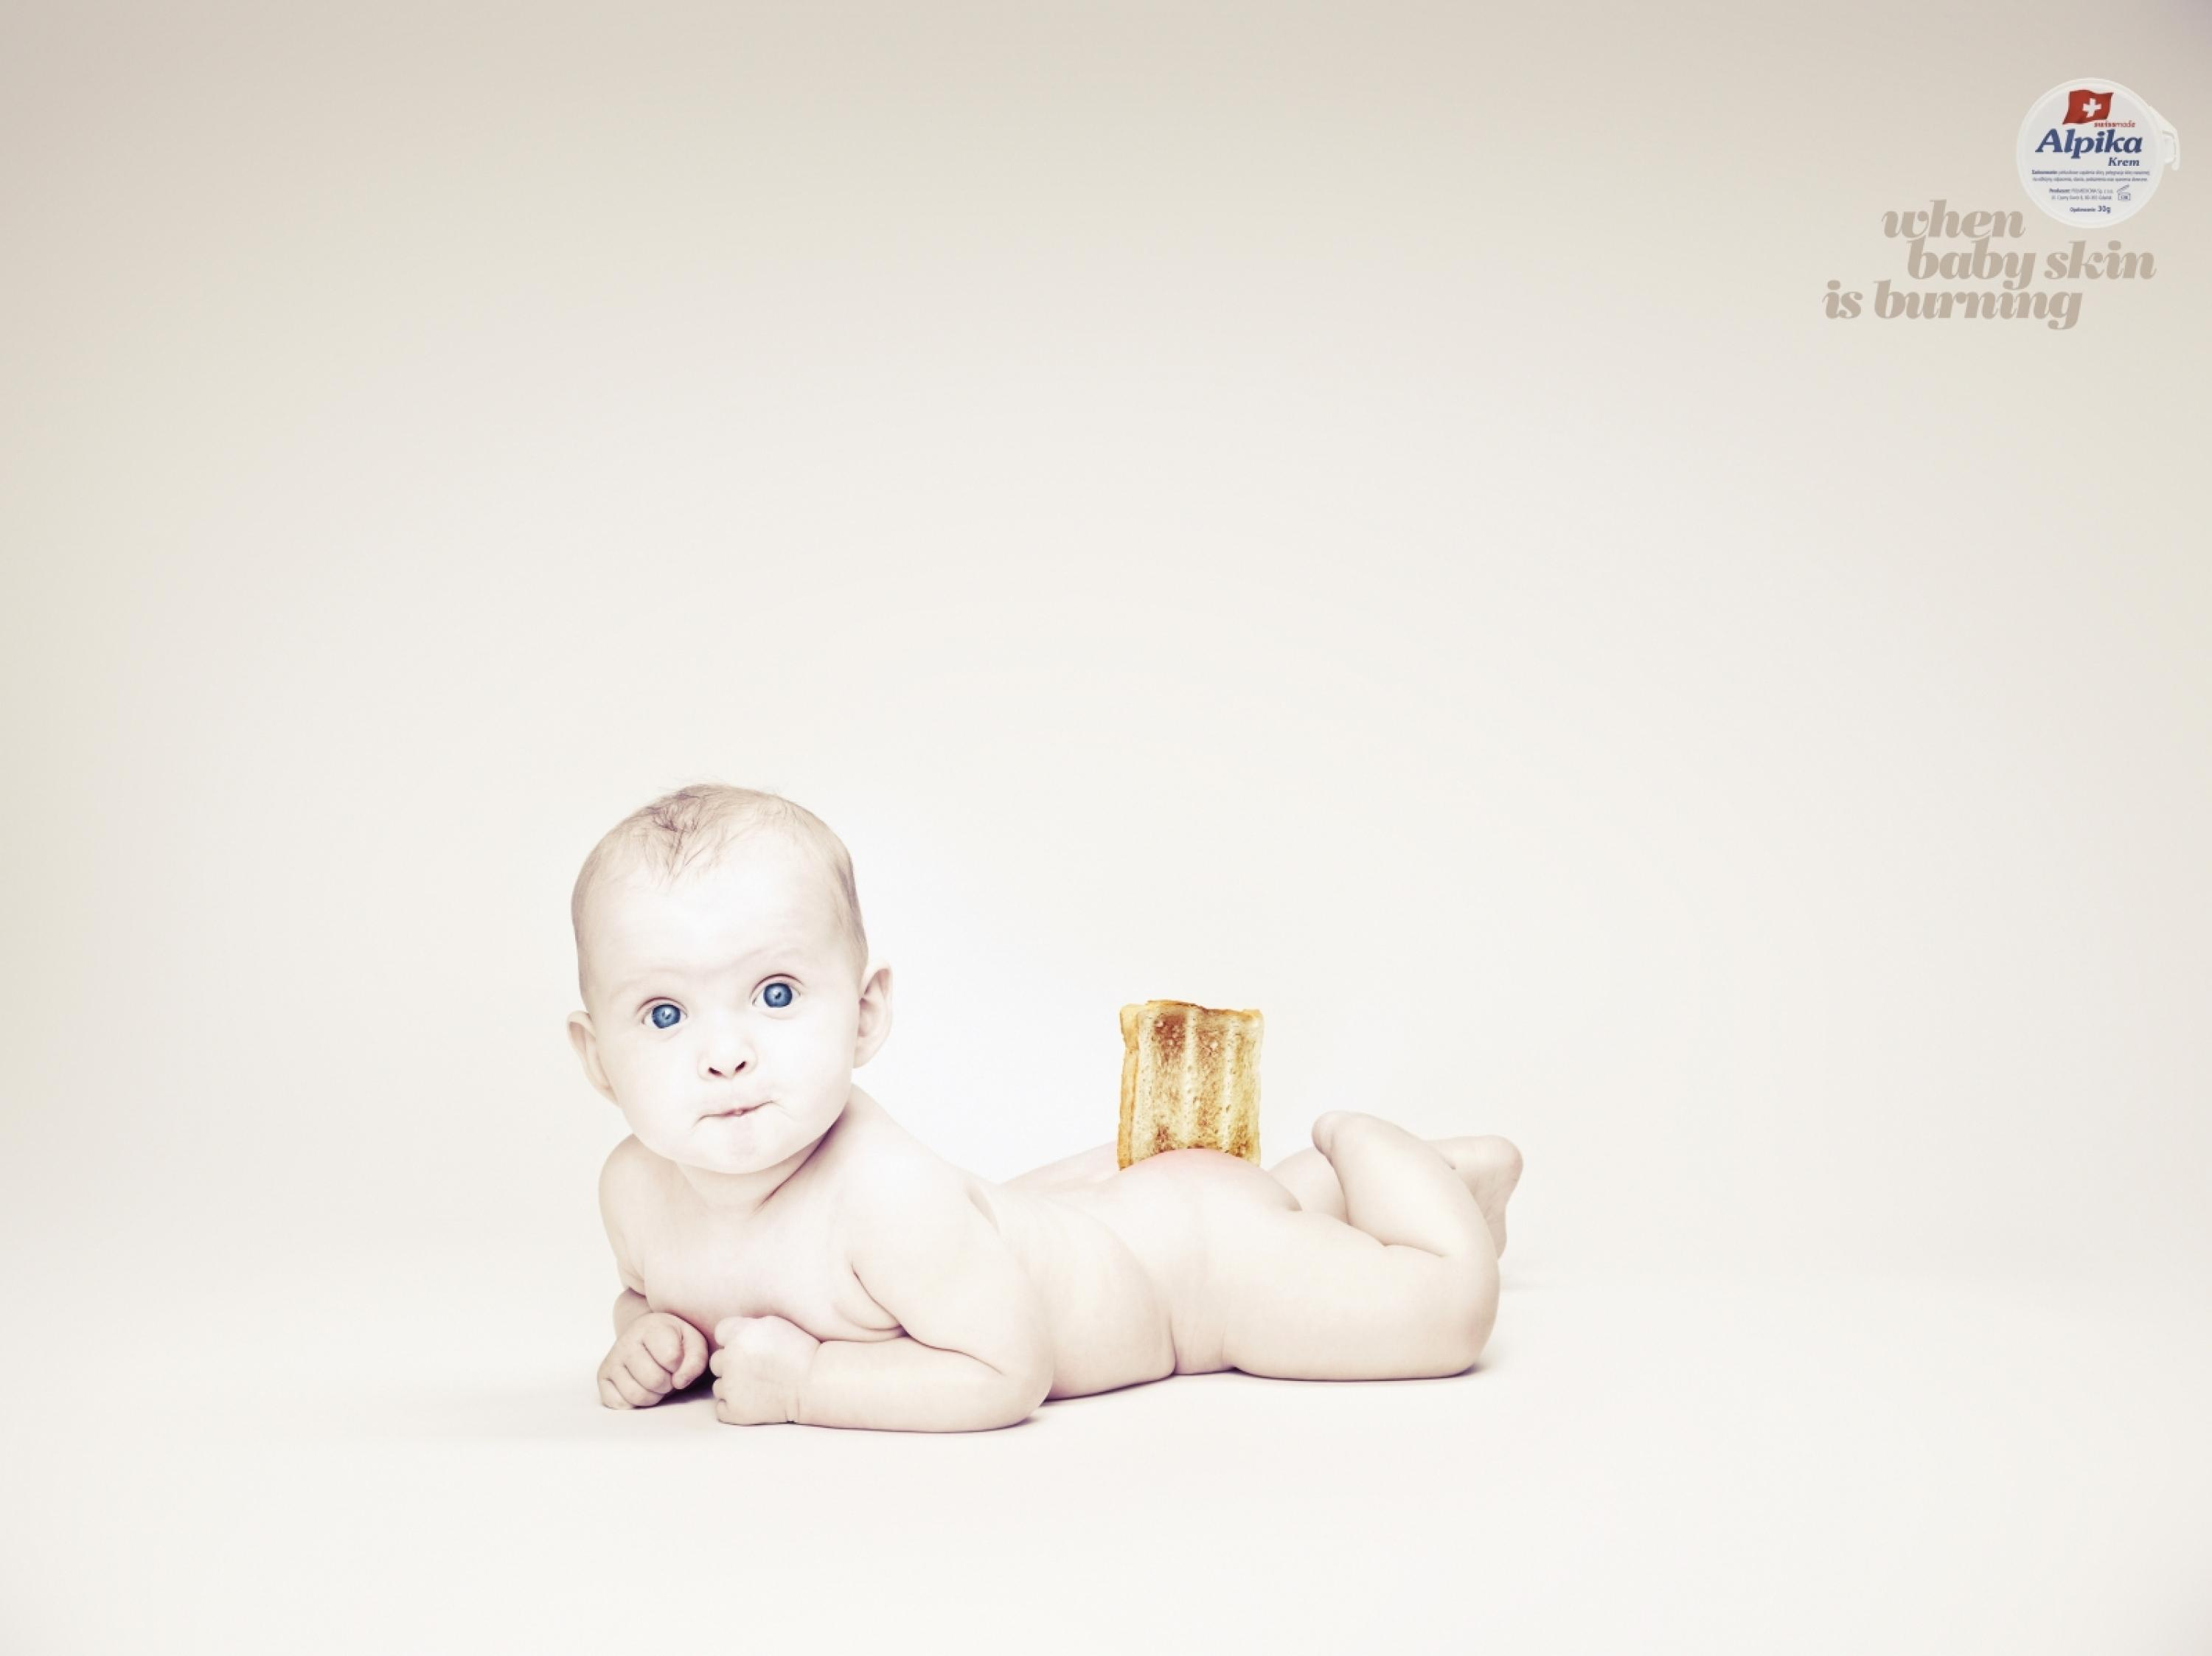 babys ch digital advertising - HD 1250×936